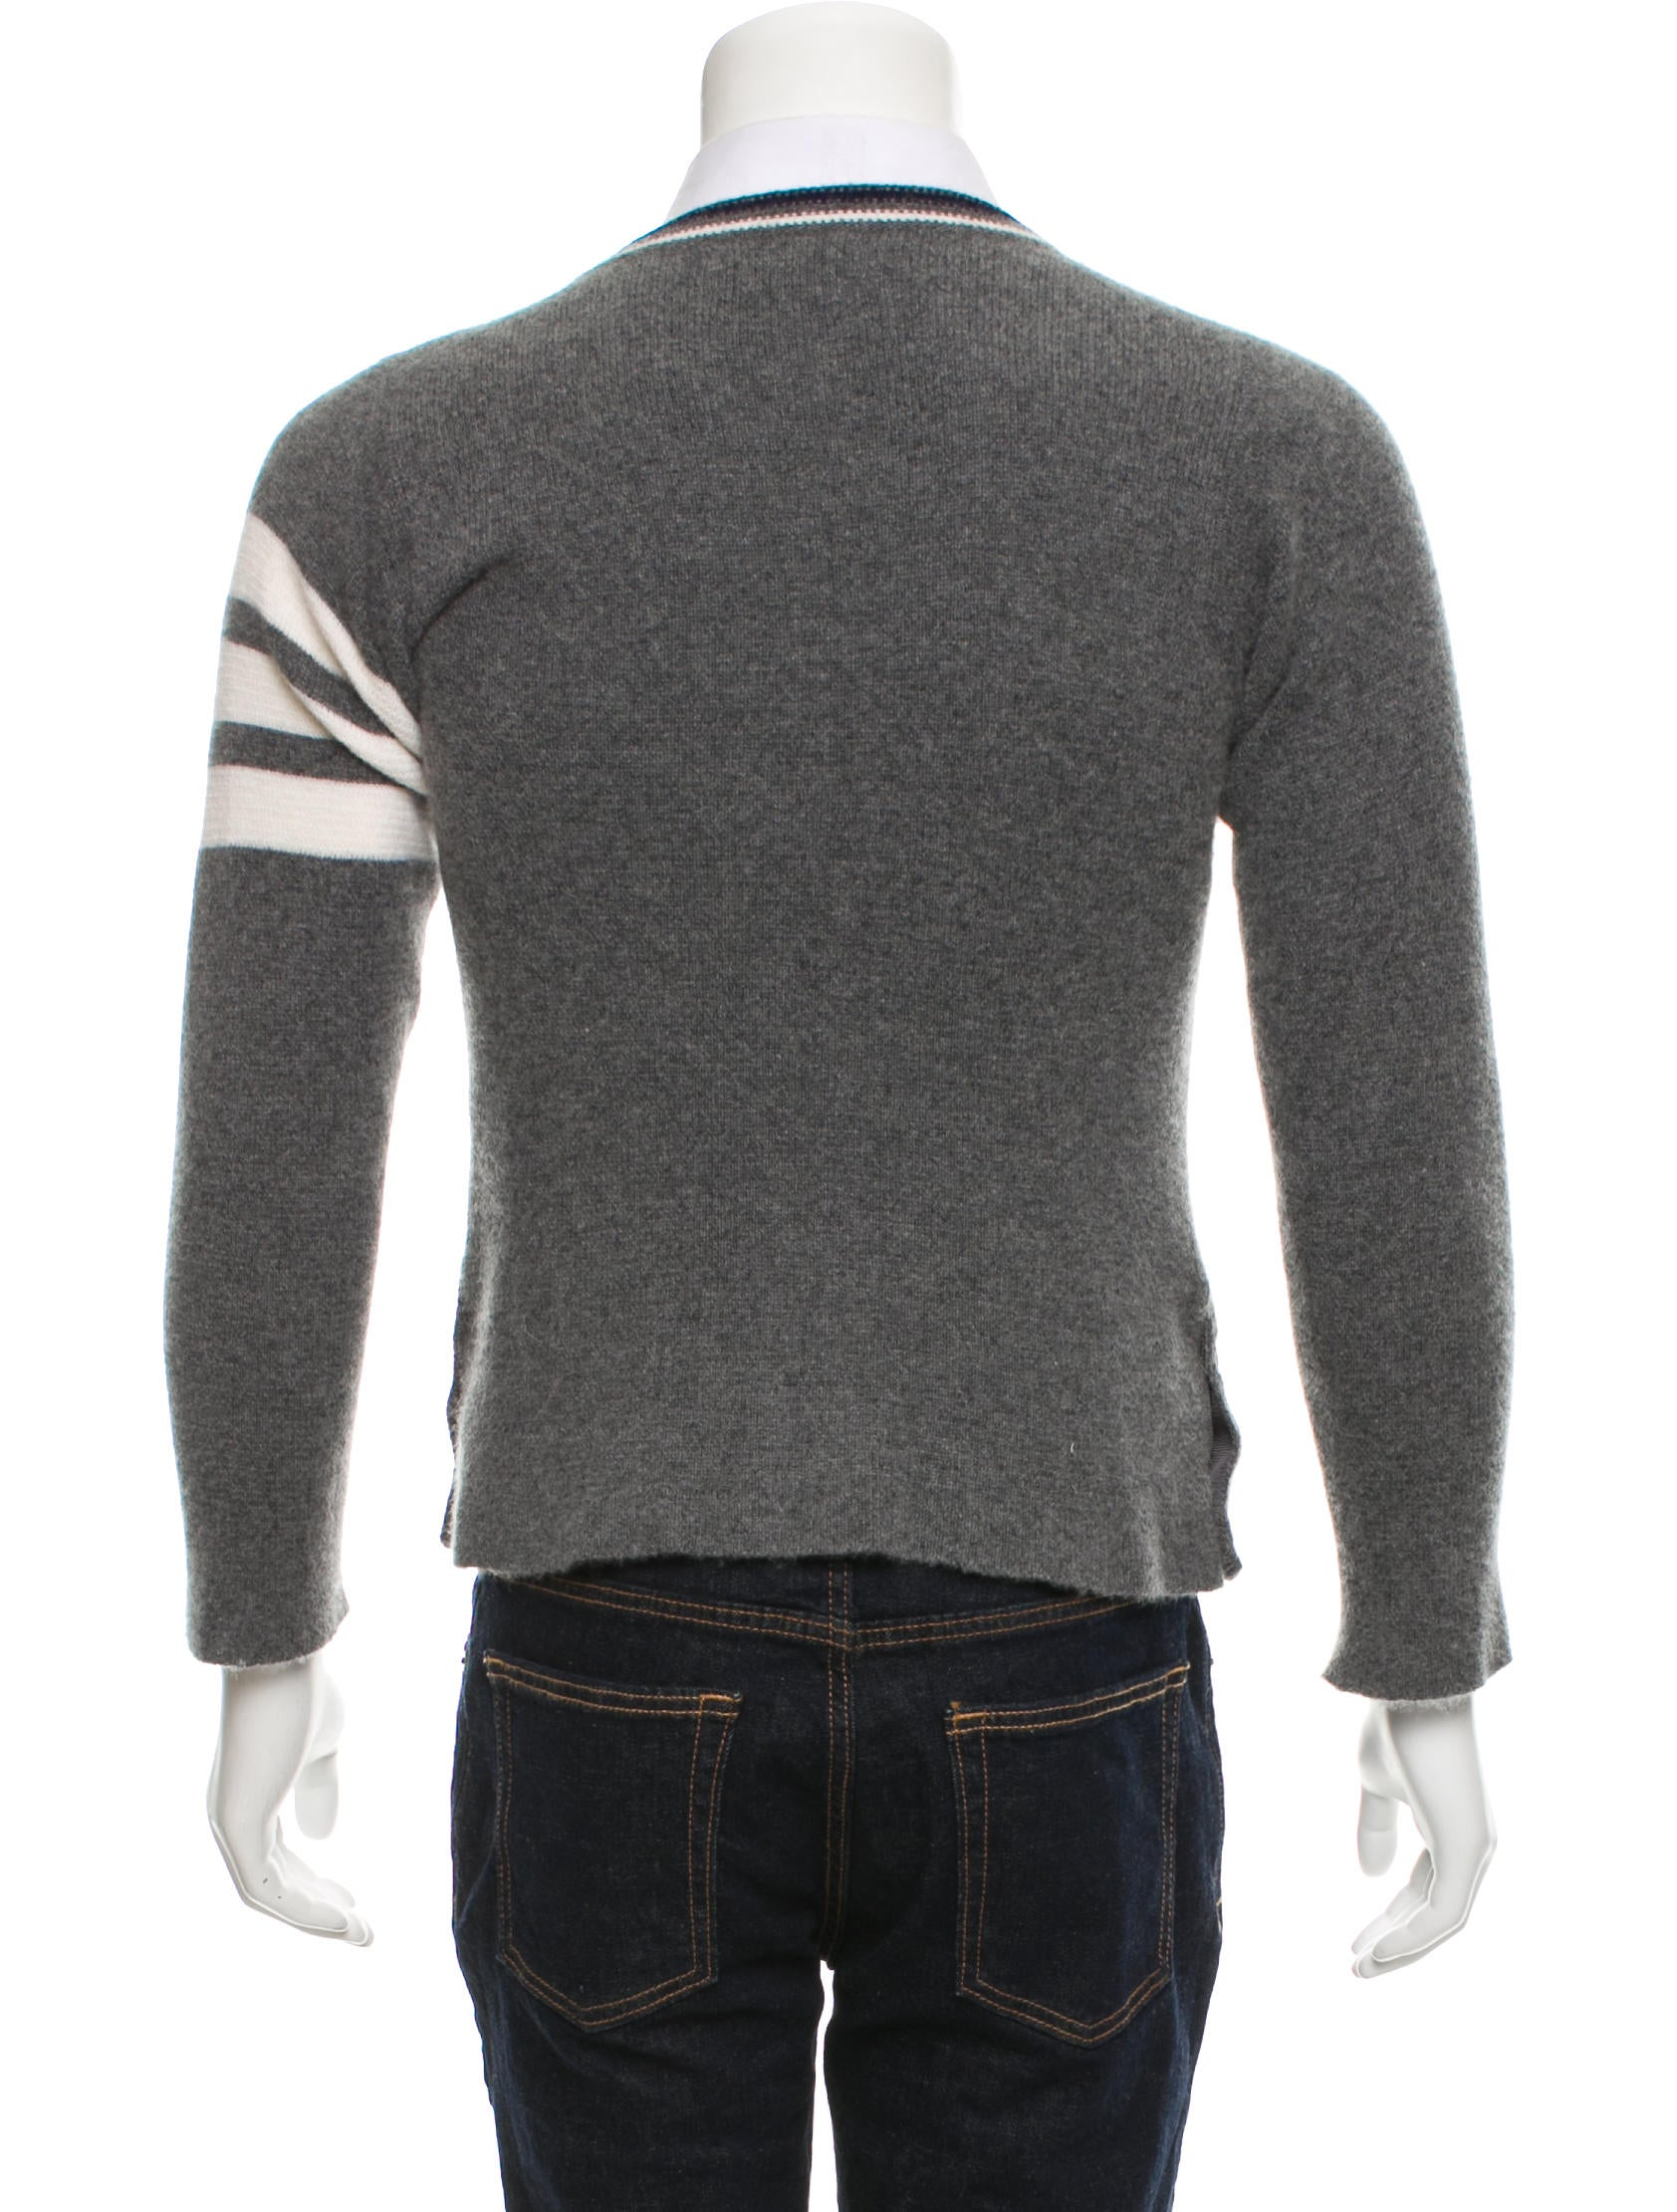 8a7f639f76e9 Thom Browne 4 Bar-Striped Cashmere Cardigan - Clothing - THO23108 ...